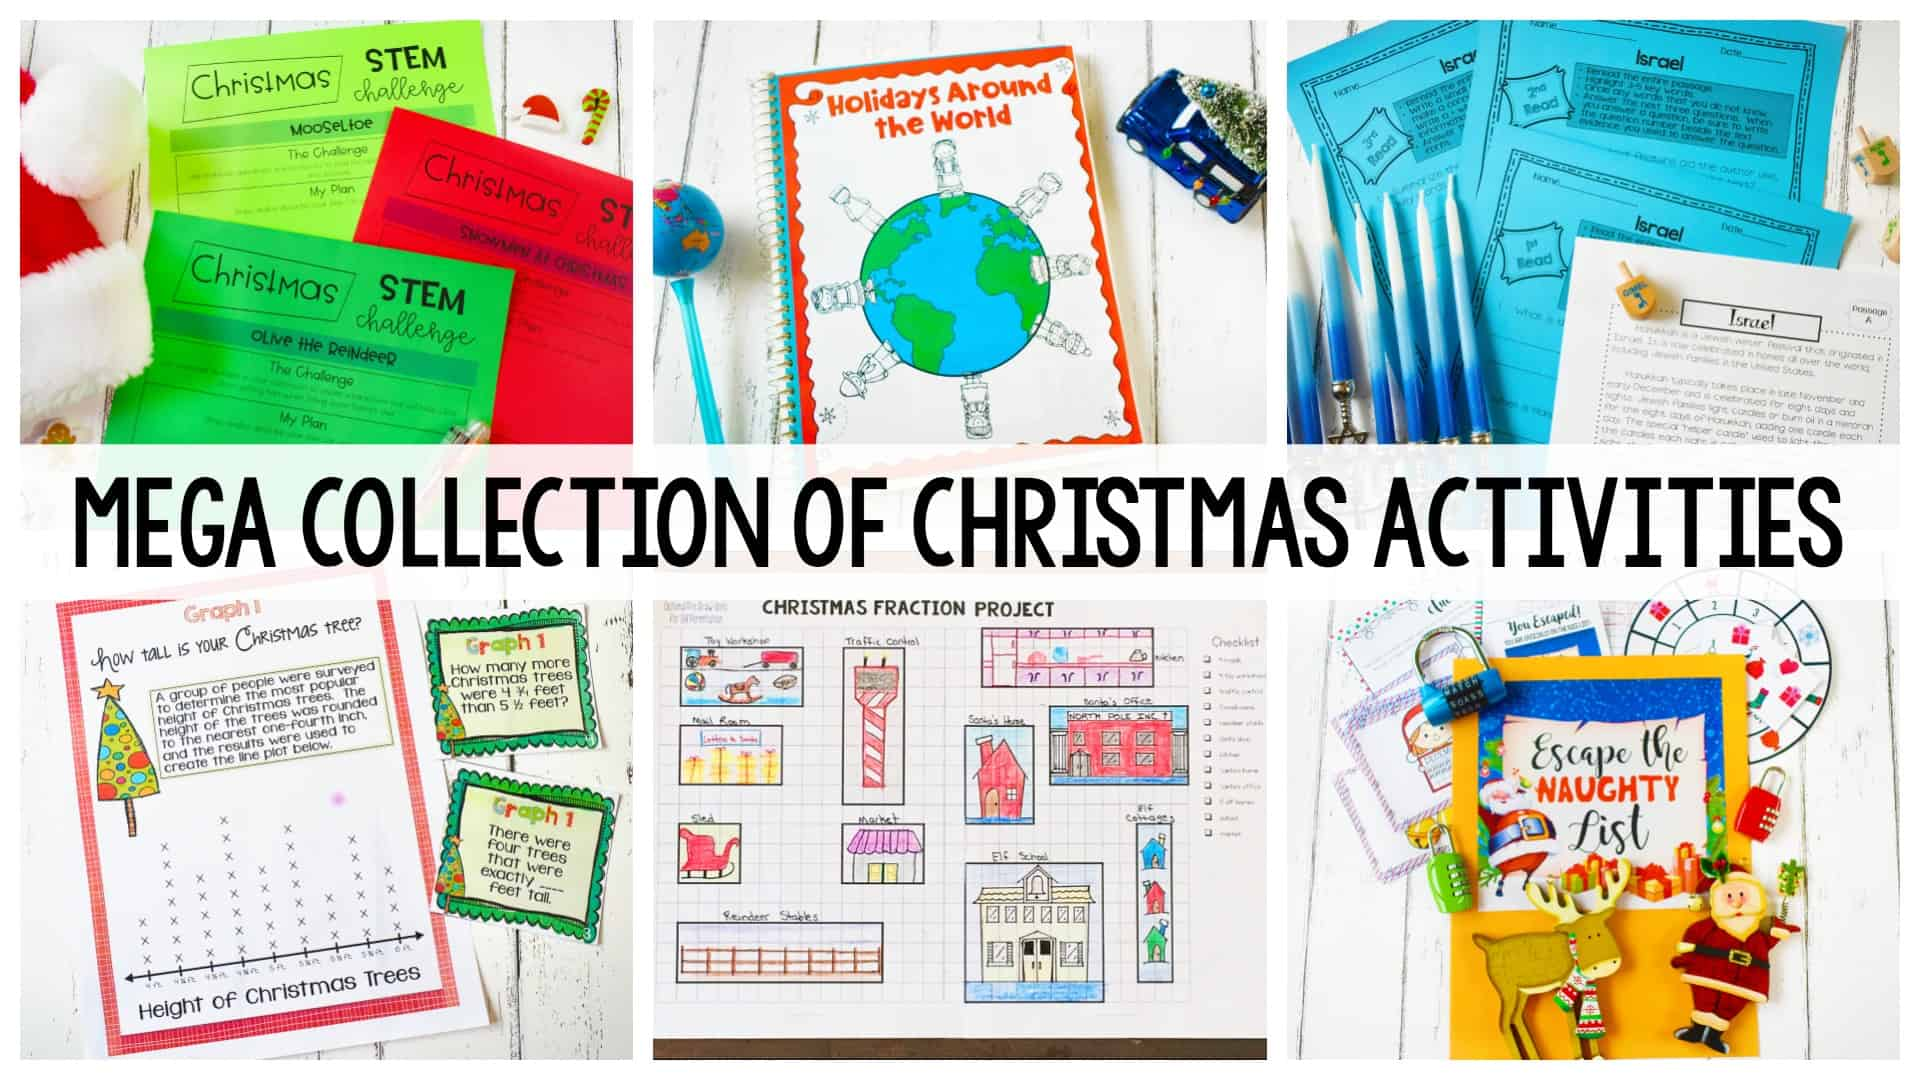 Mega Collection of Christmas Activities header with several colorful activity sheets in background